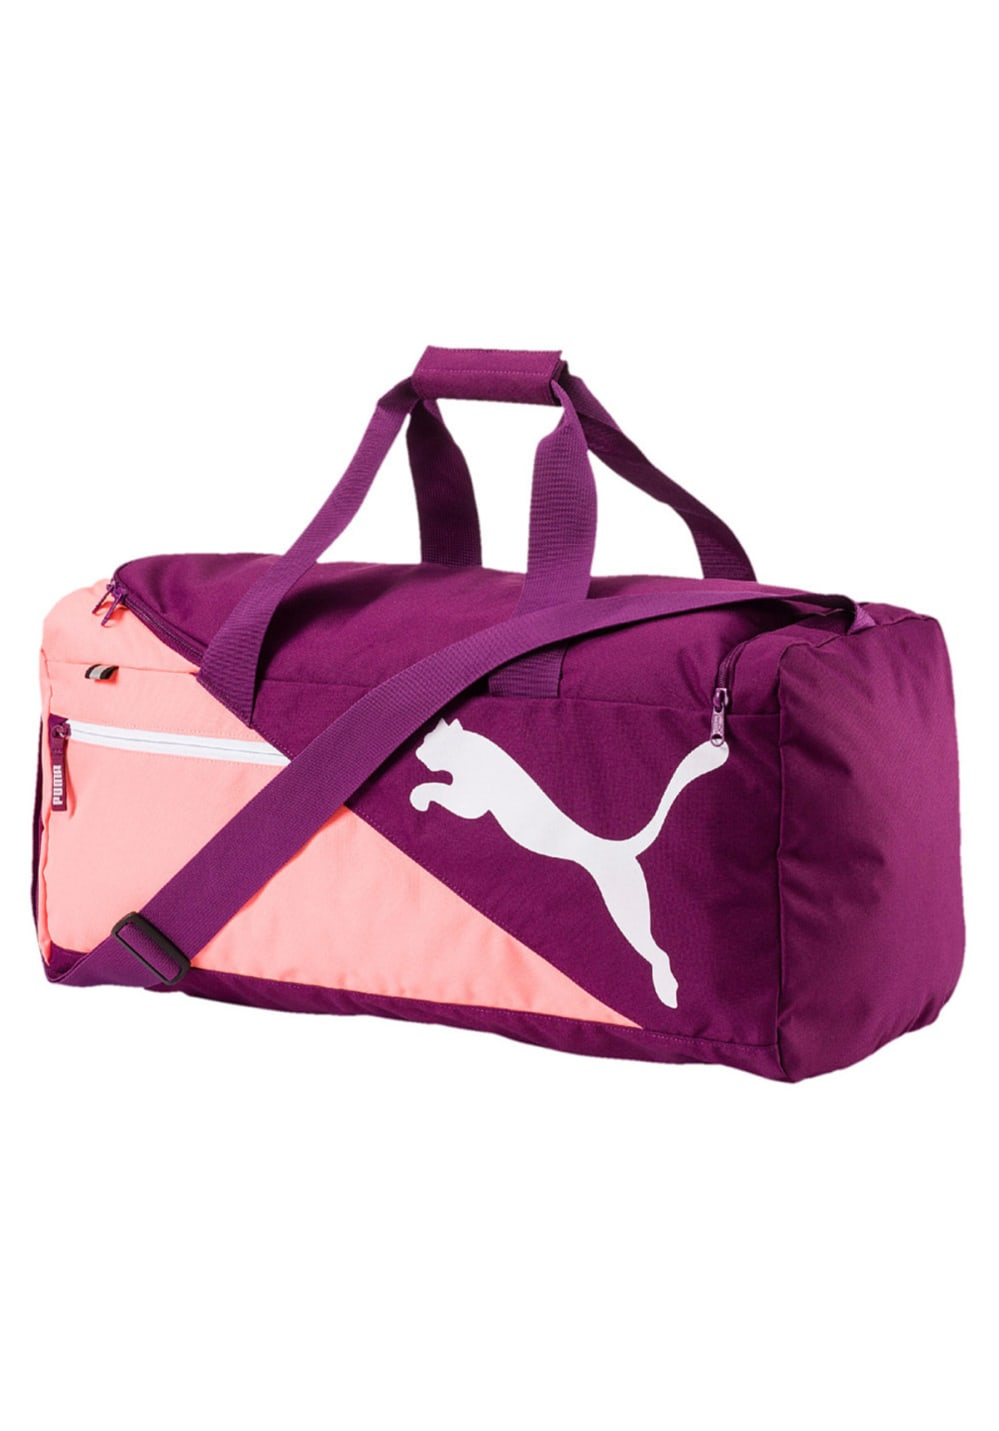 ... Puma Fundamentals Sports Bag M - Sports bags - Purple. Back to  Overview. This product is currently out of stock. 53fd0b72c81a8